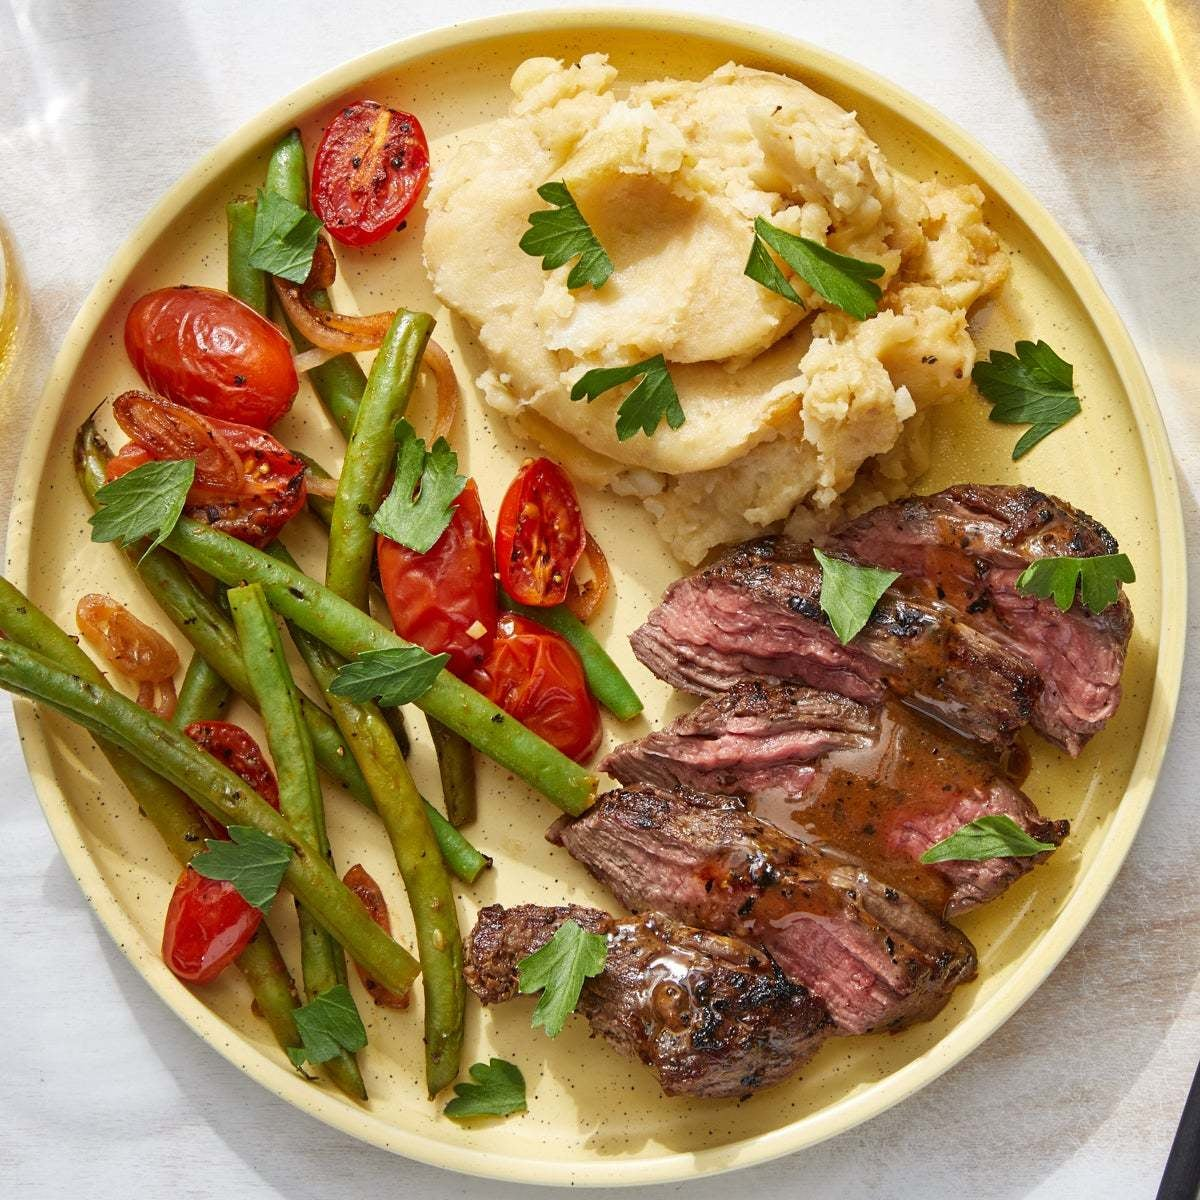 Steaks & Sautéed Vegetables with Cheesy Mashed Potatoes